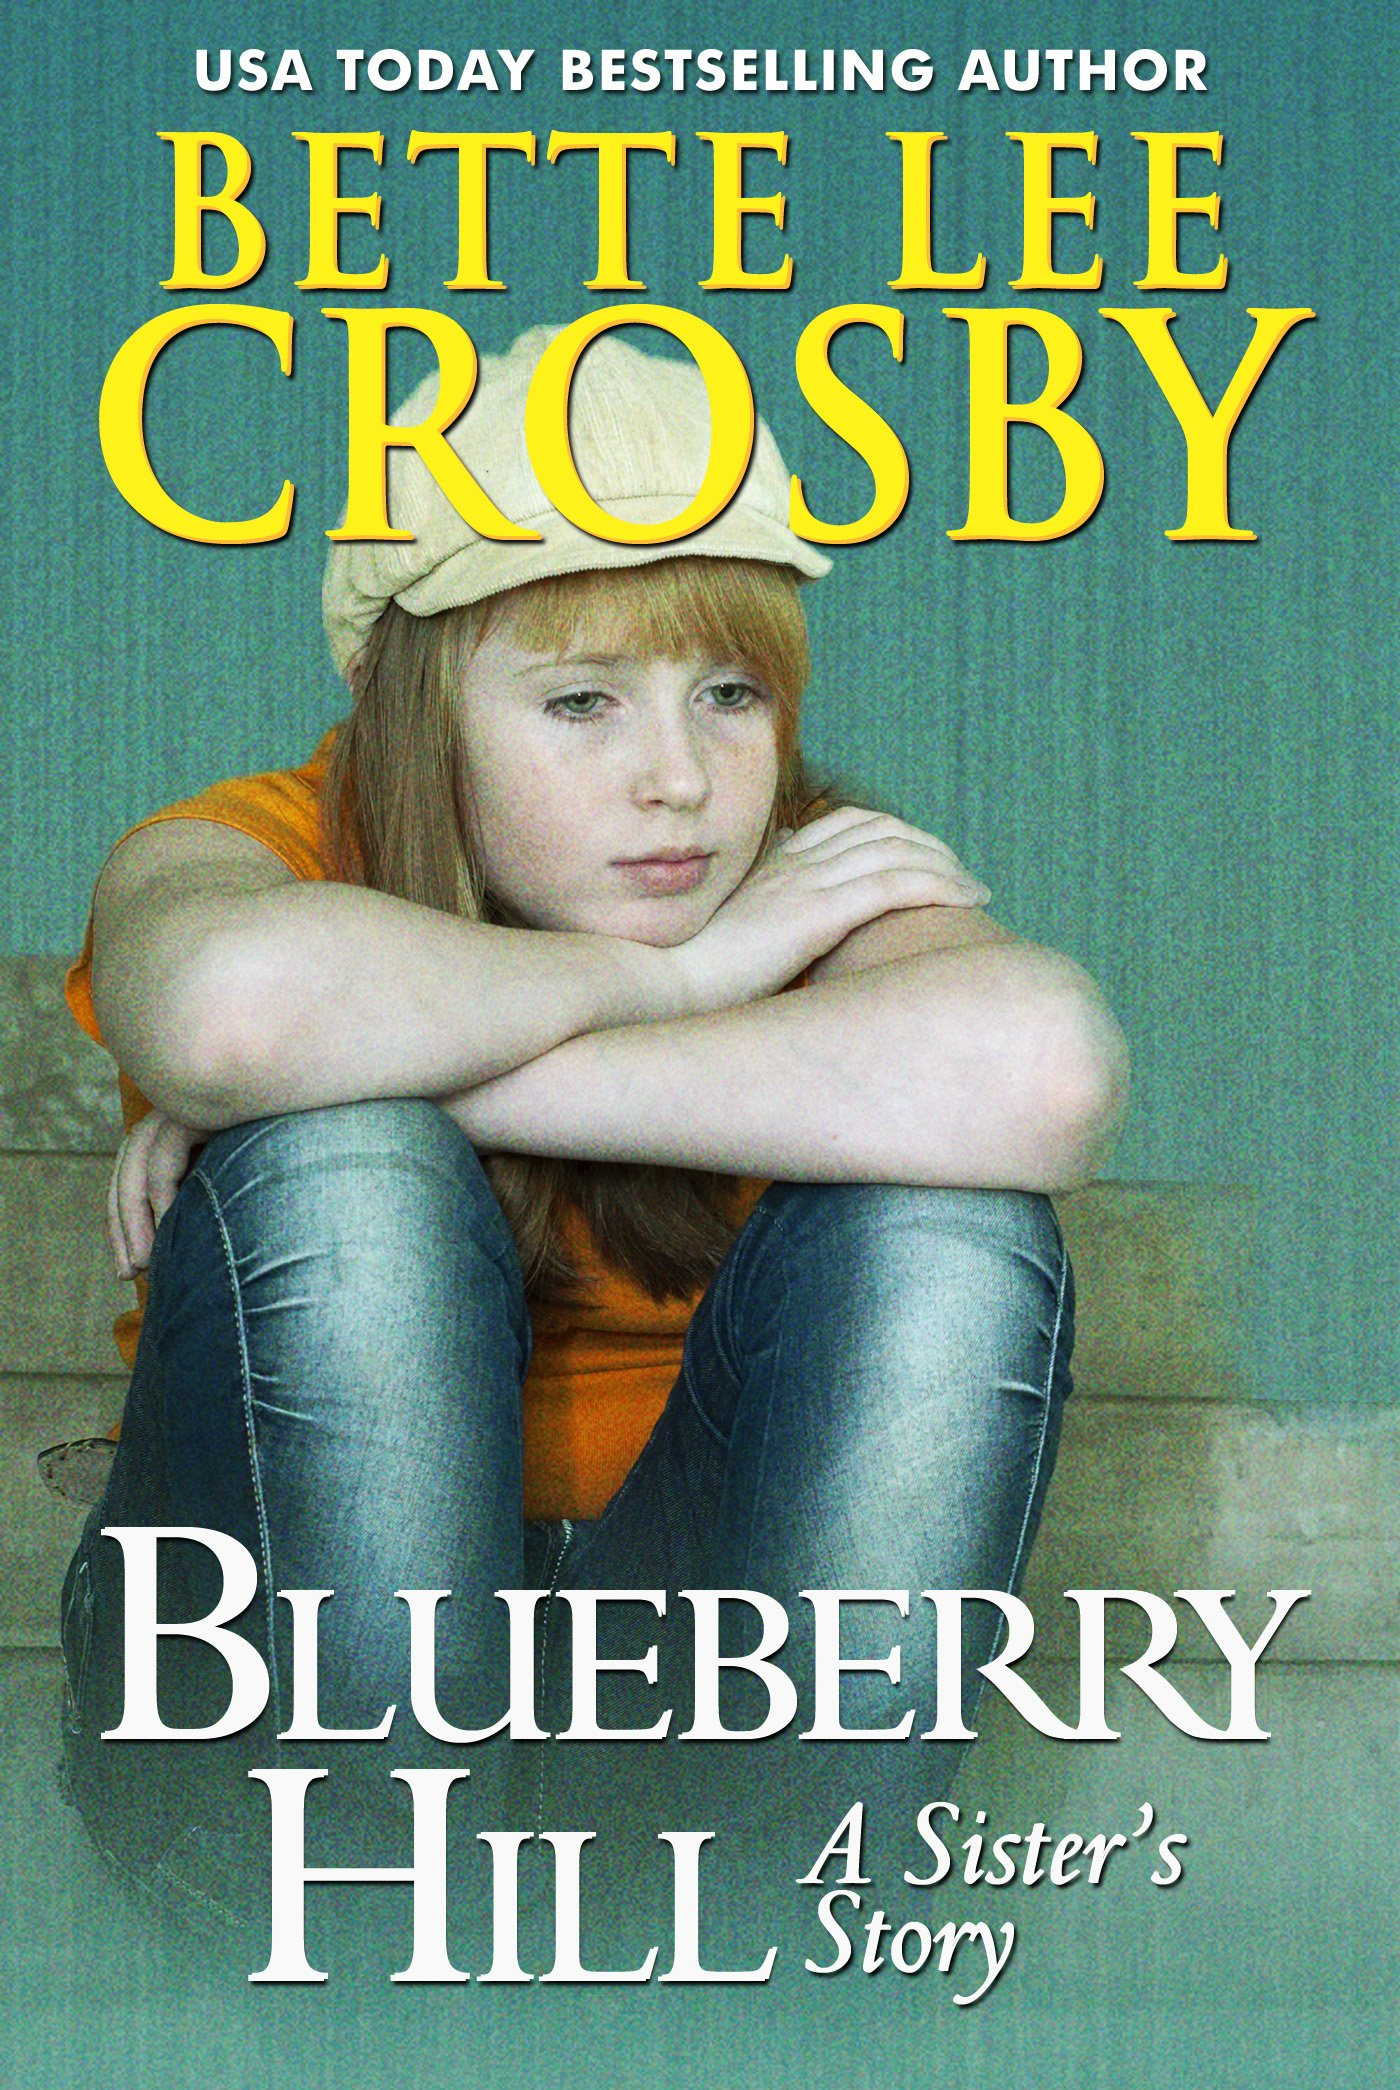 Review of Blueberry Hill by Brenda on The Reader Salute